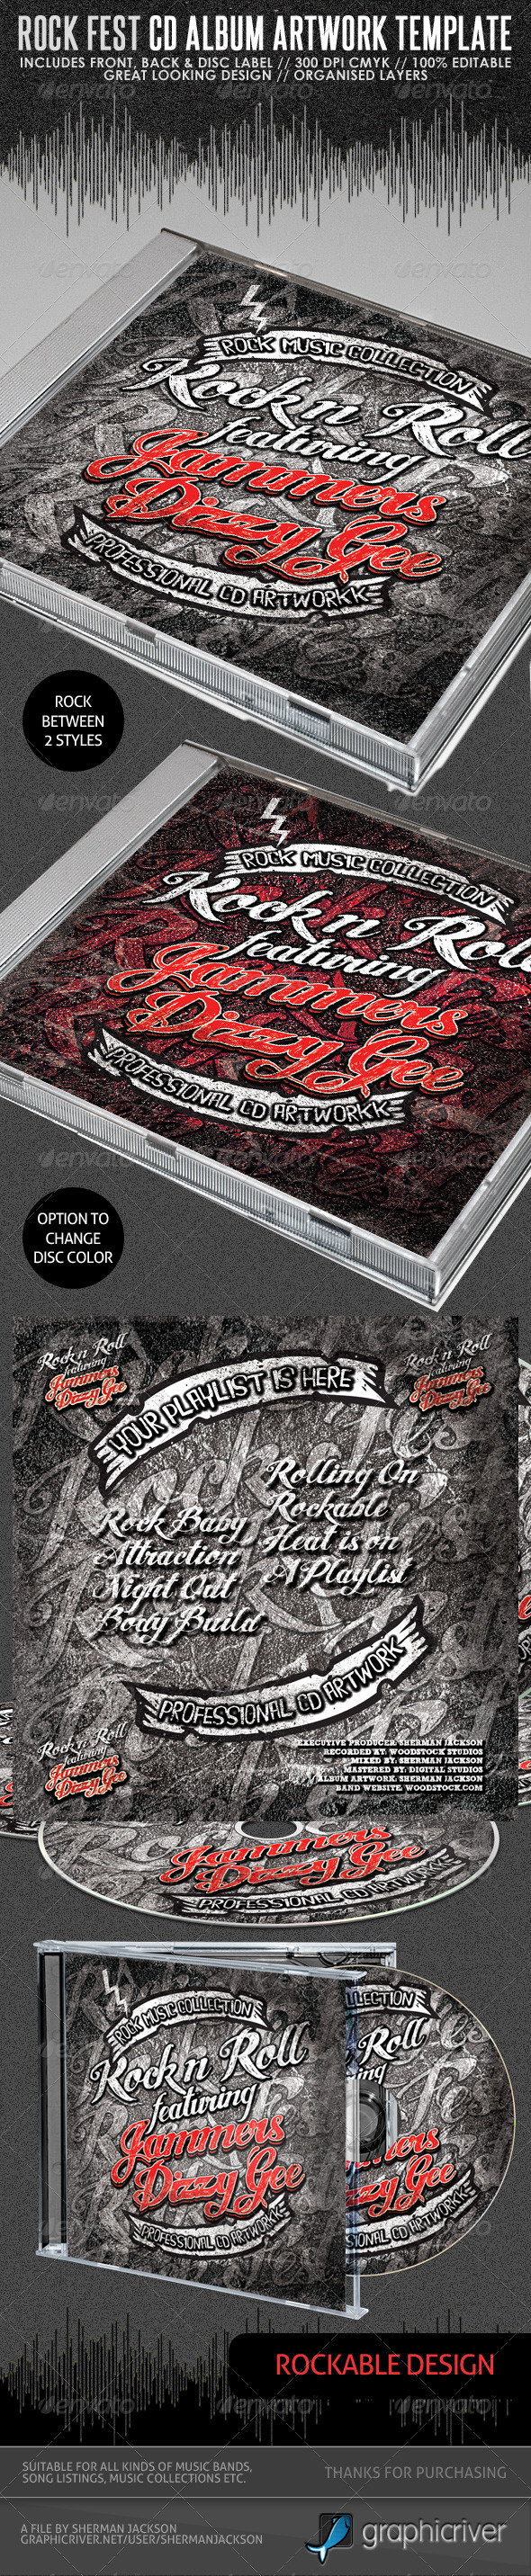 Rock Fest CD Artwork PSD Template - CD & DVD artwork Print Templates